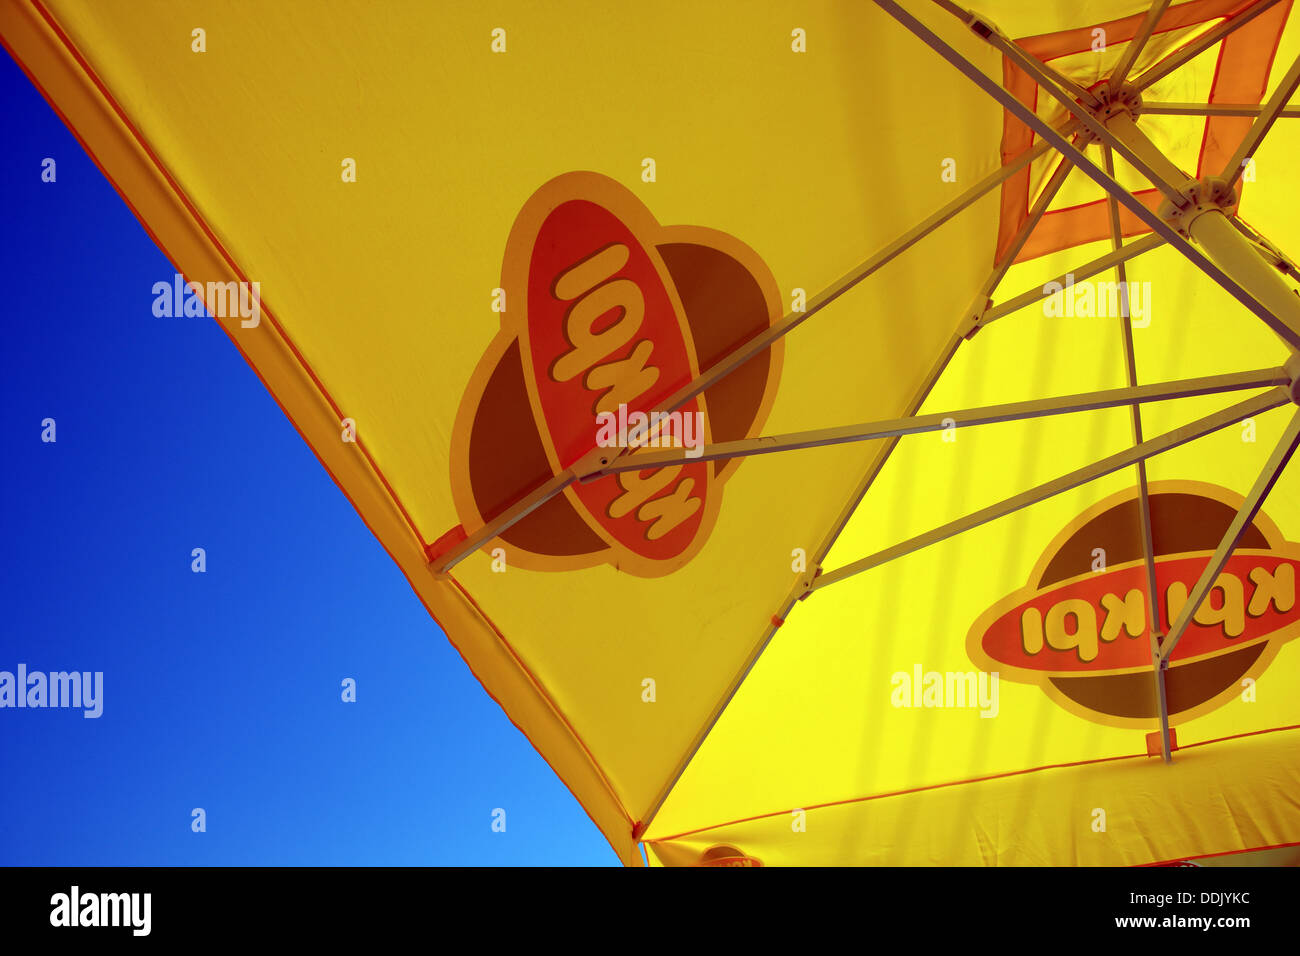 Yellow sunshade against a blue sky - Stock Image